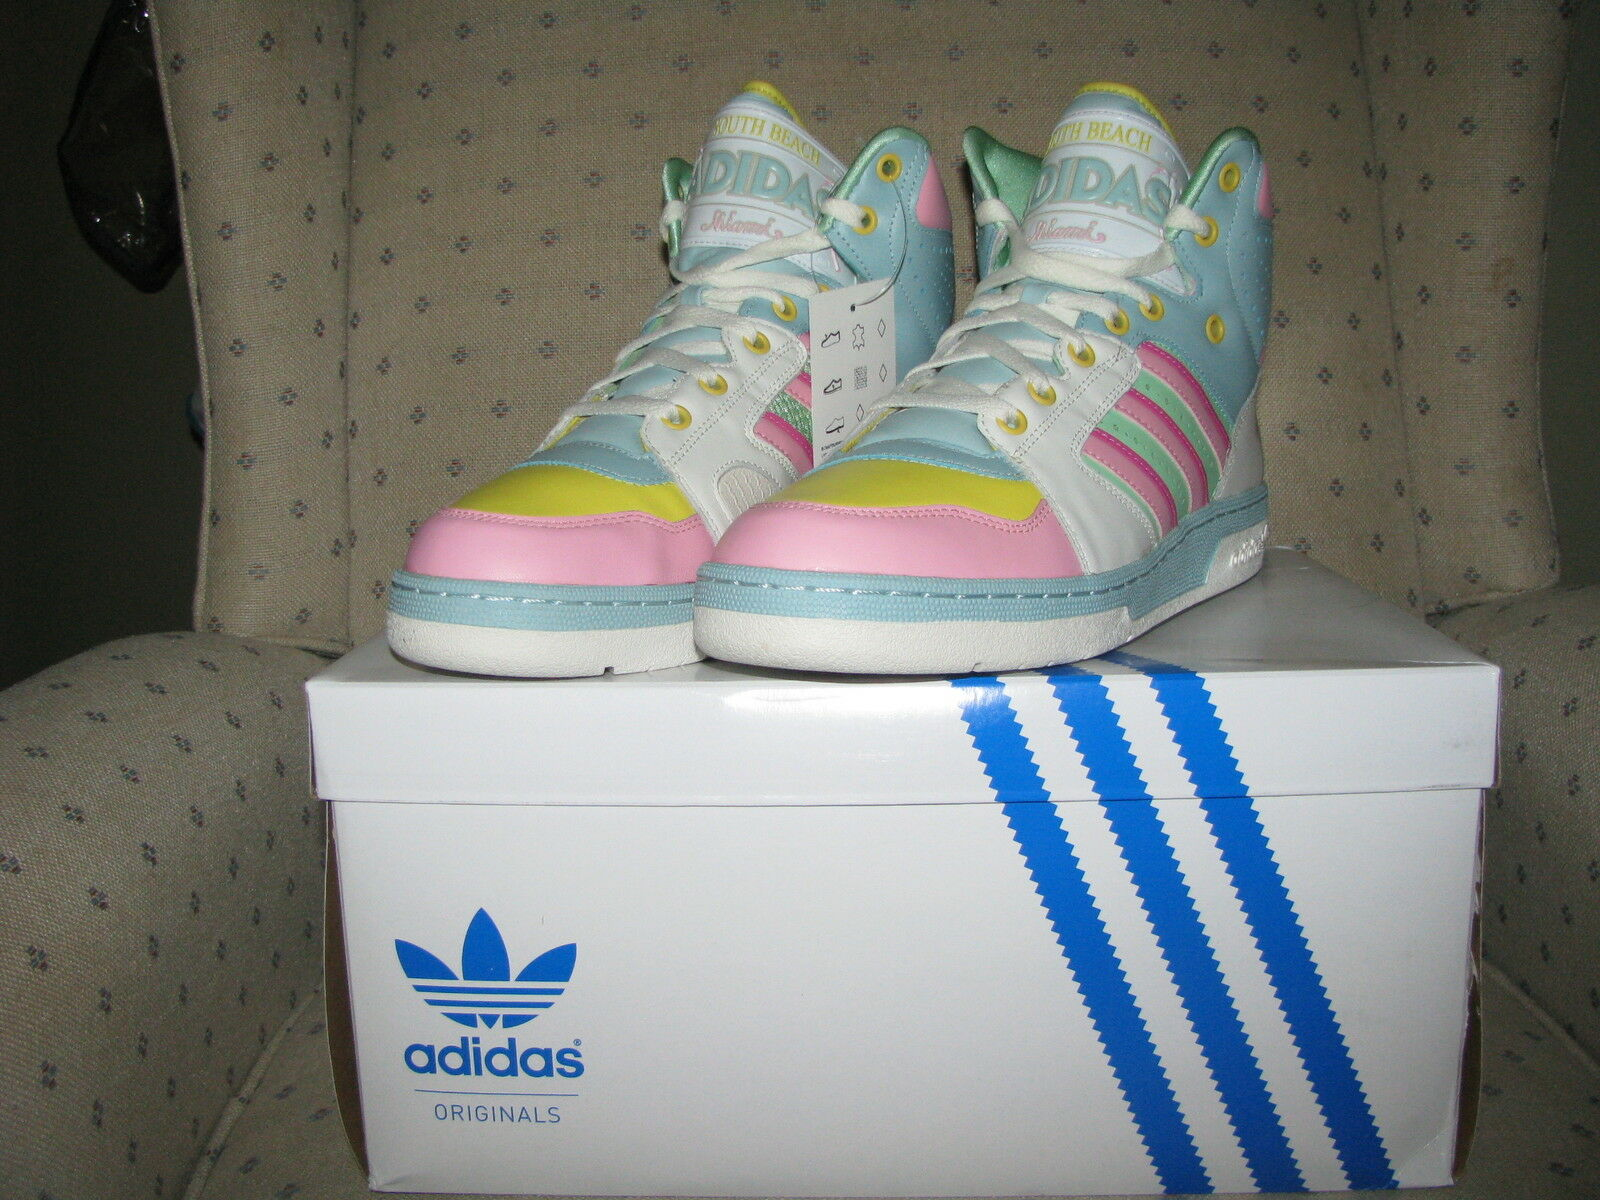 ADIDAS ORIGINALS ObyO JEREMY SCOTT LICENSE PLATE MIAMI UJ 10.5 Beach Wings Sz US 10.5 UJ ede62d